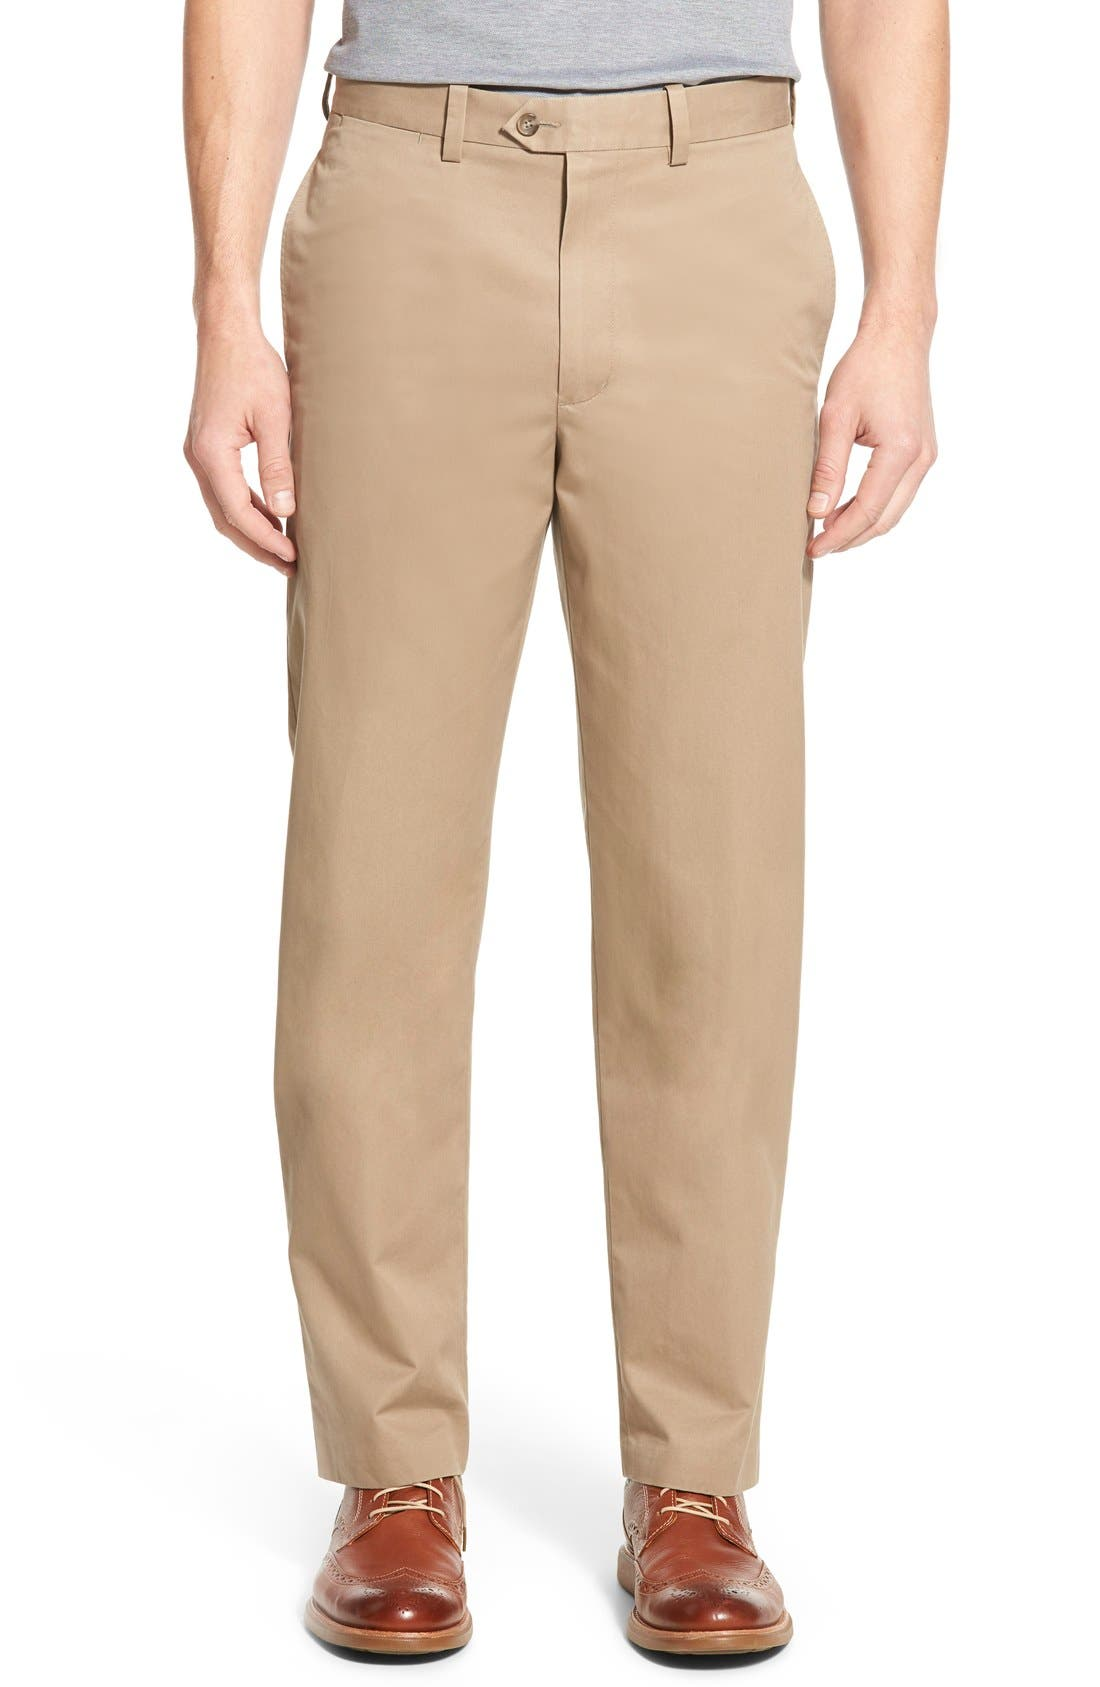 NORDSTROM MENS SHOP Smartcare<sup>™</sup> Classic Supima<sup>®</sup> Cotton Flat Front Trousers